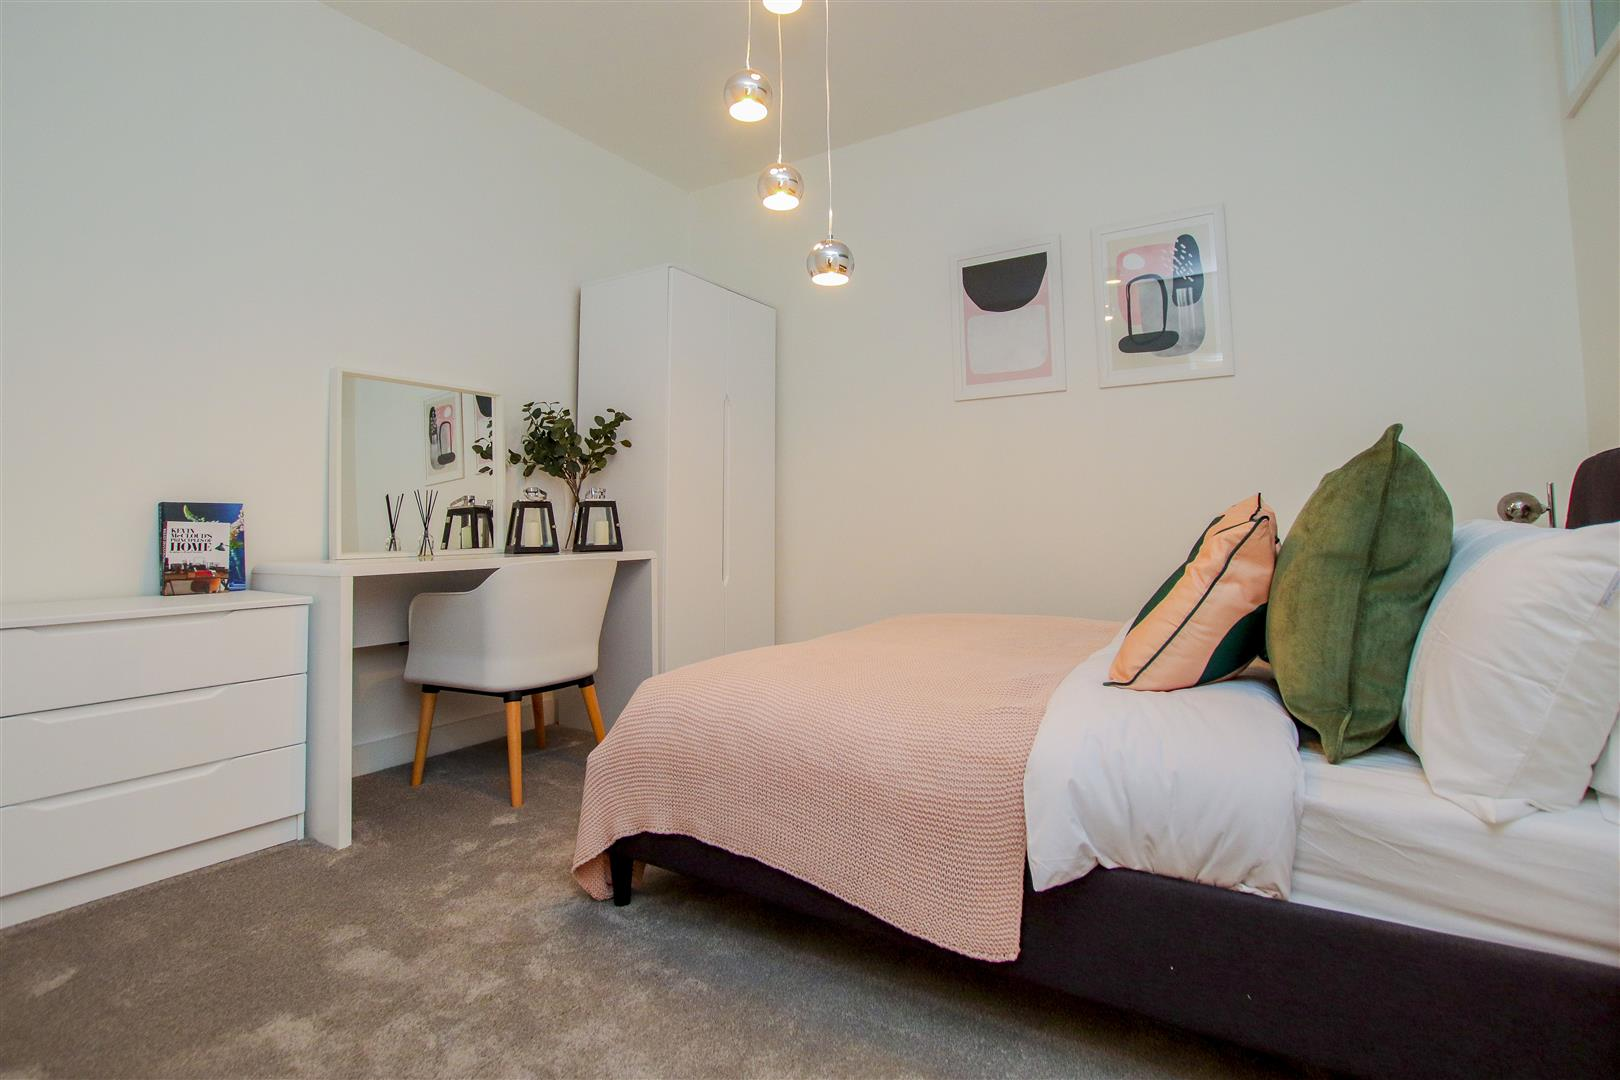 2 Bedroom Apartment For Sale - 17.JPG